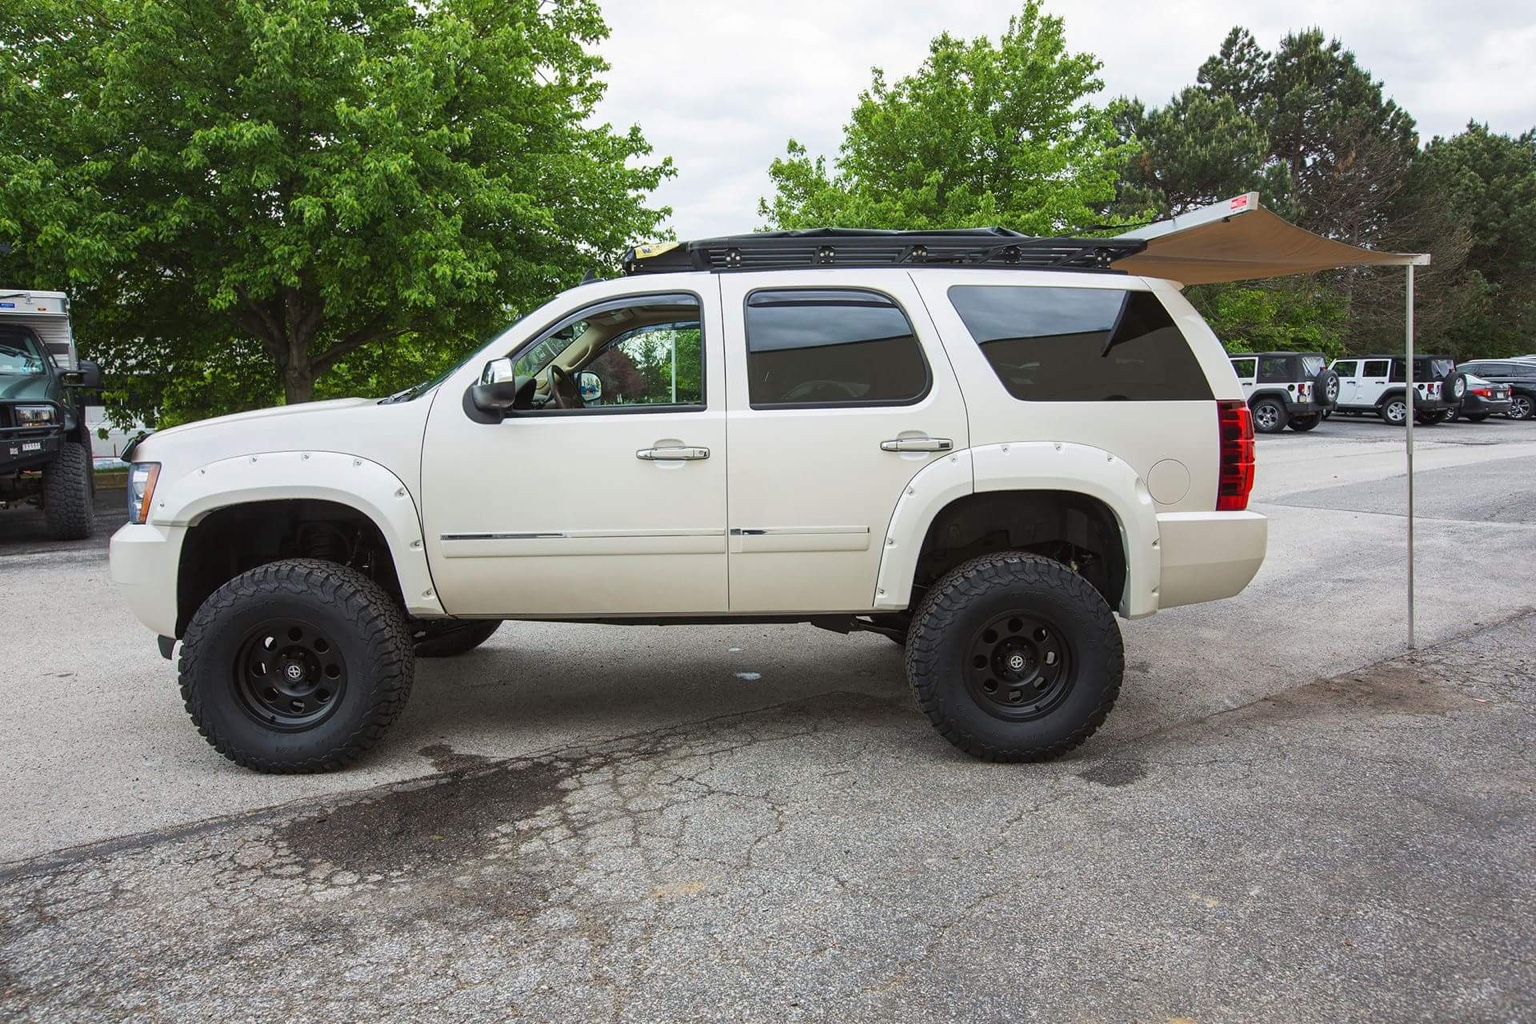 1101tr 2008 Chevy Tahoe Buildup additionally 0605tr Custom Chevy Avalanche besides Wheel Offset 2004 Chevrolet Tahoe Slightly Aggressive Leveling Kit Custom Rims in addition 0302or 2001 Chevrolet Suburban as well Page 40. on lifted tahoe z71